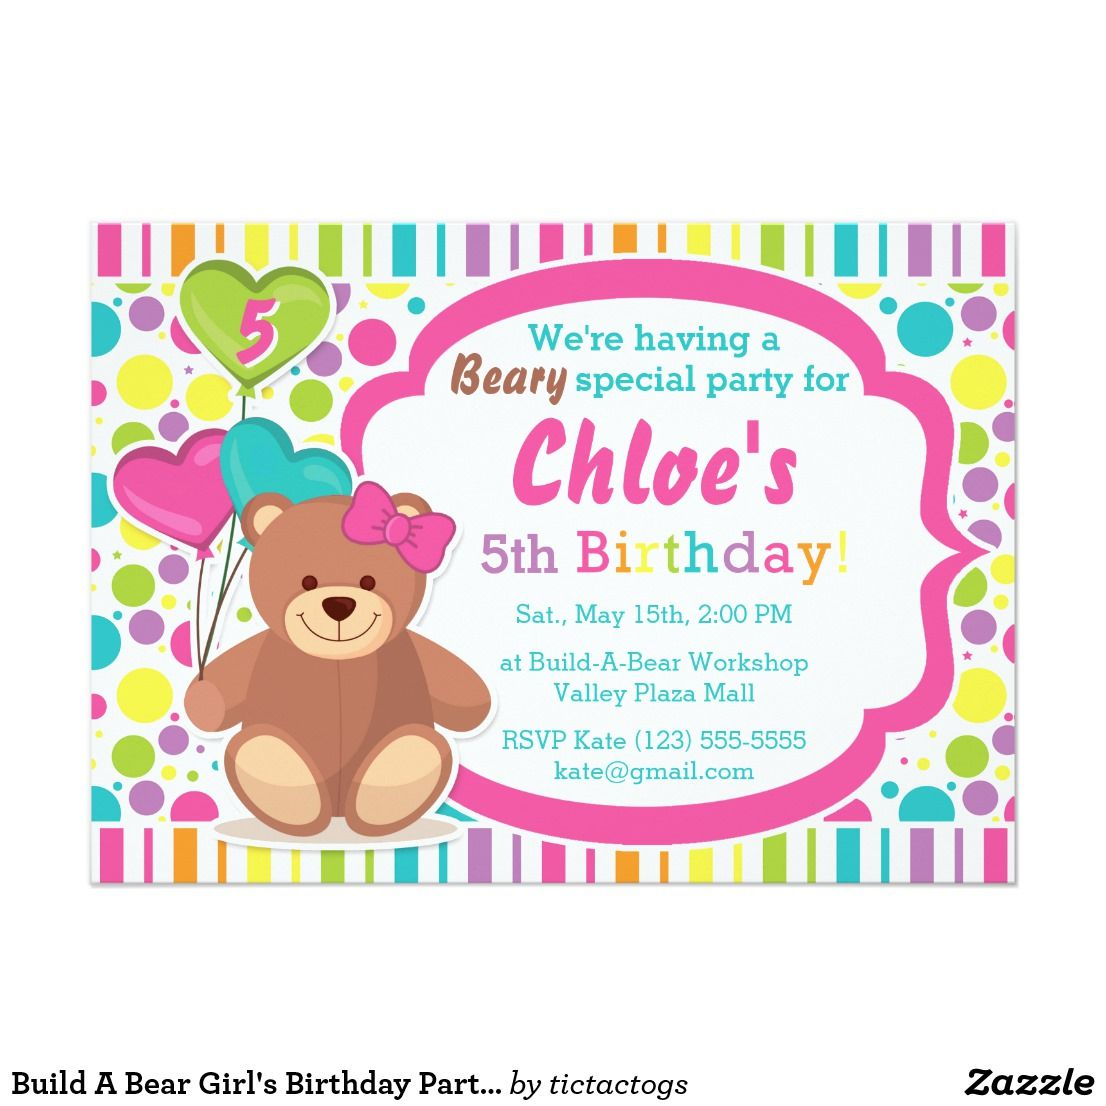 9701fde4567 Build A Bear Girl s Birthday Party Invitation Make a party beary special  with this colorful birthday invitation! Features rainbow stripes and dots  ...